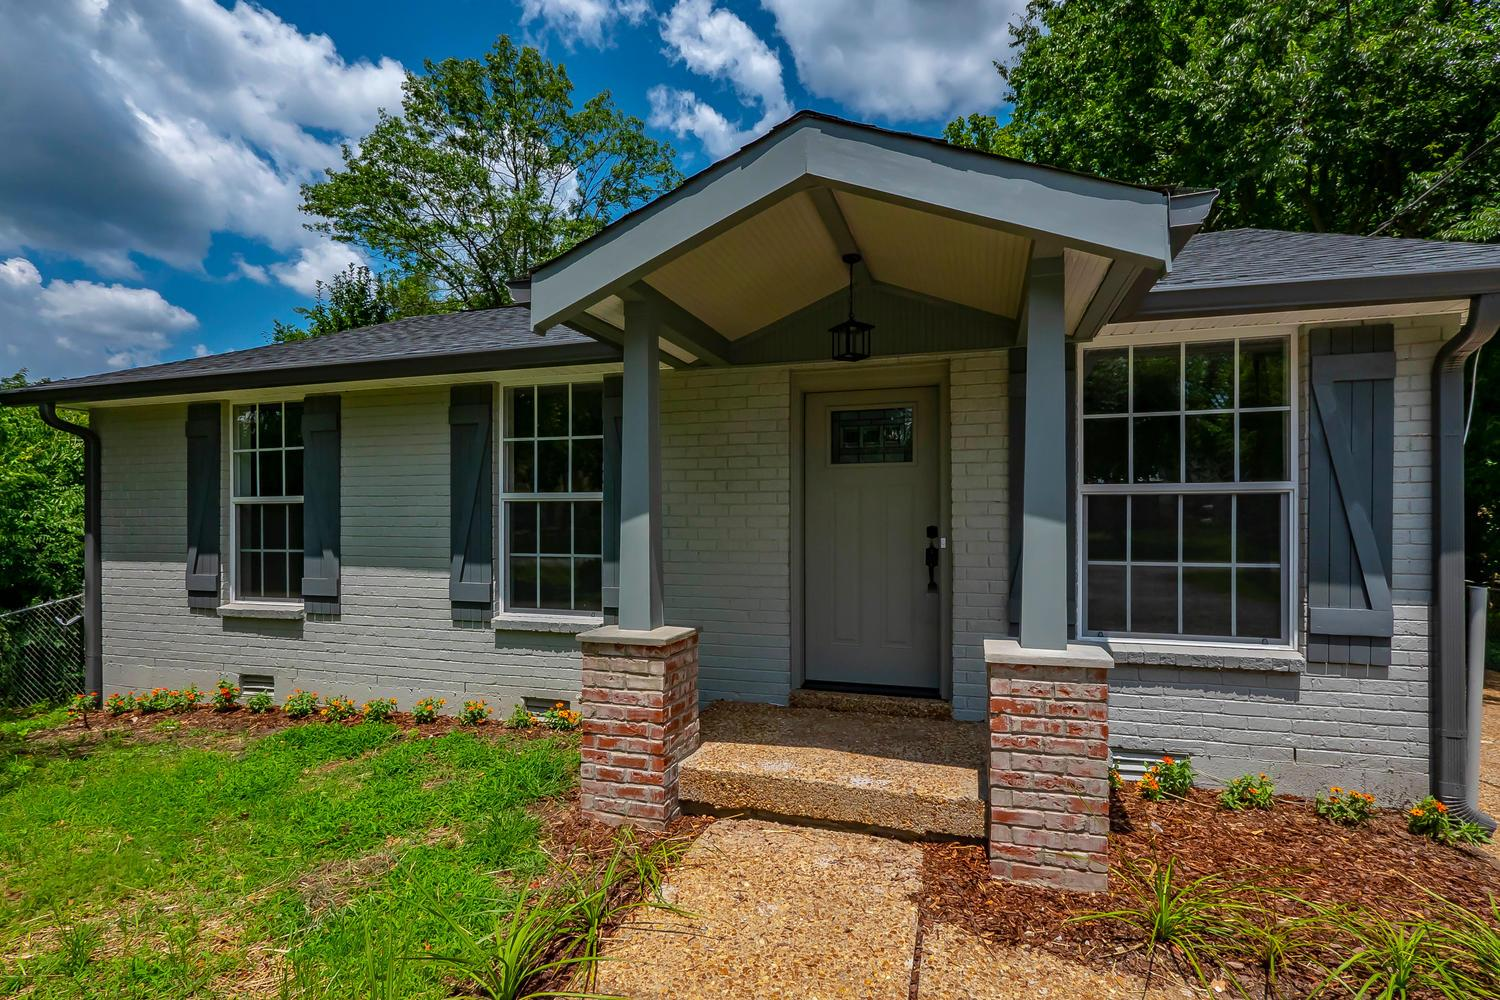 115 Flintlock Dr, Franklin, TN 37064 - Franklin, TN real estate listing